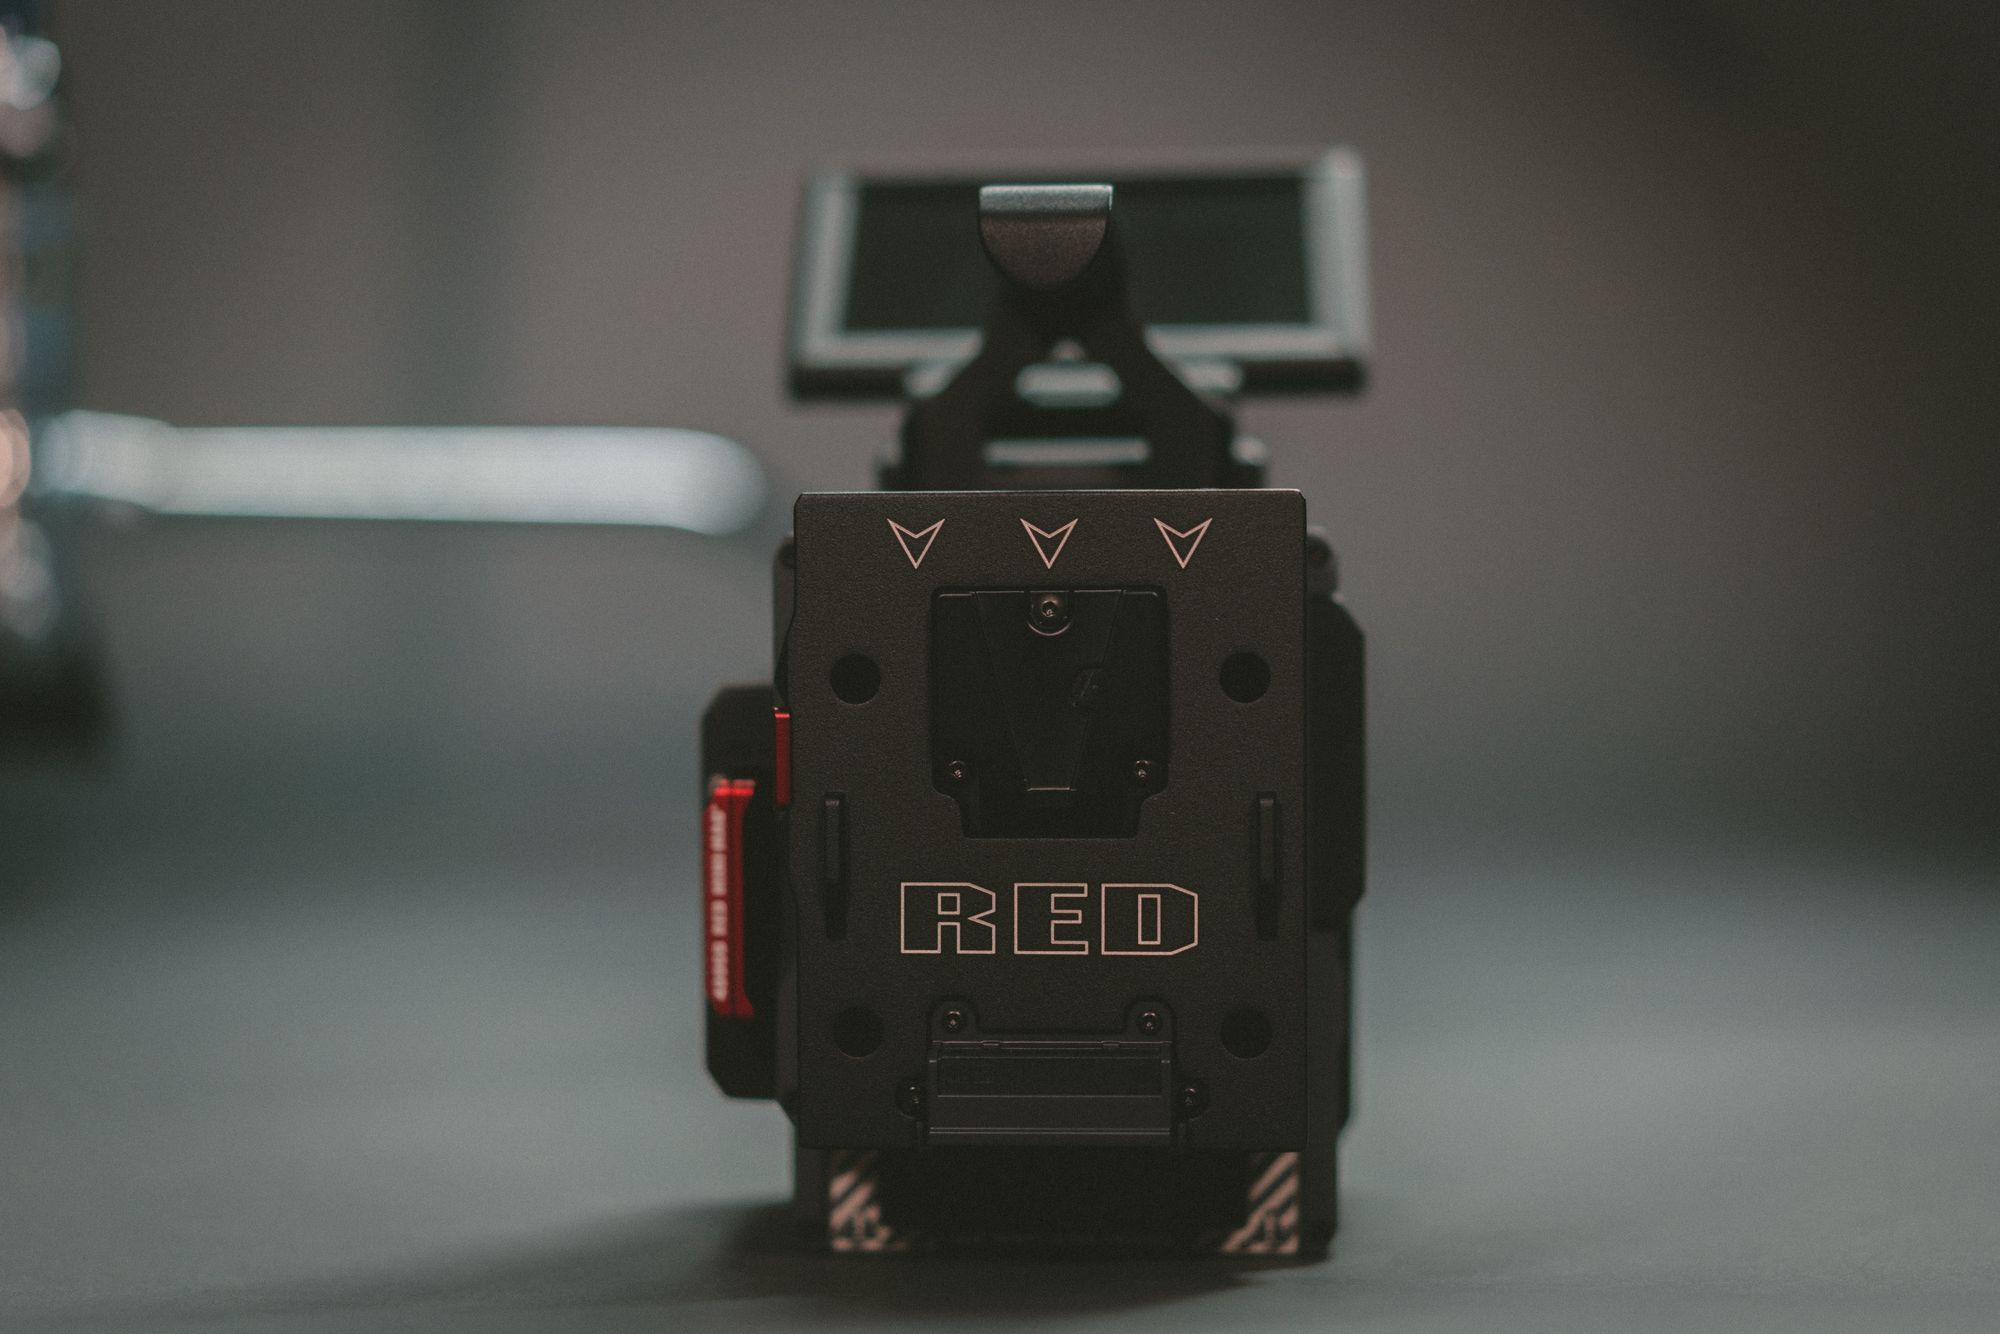 RED cameras good for post-production